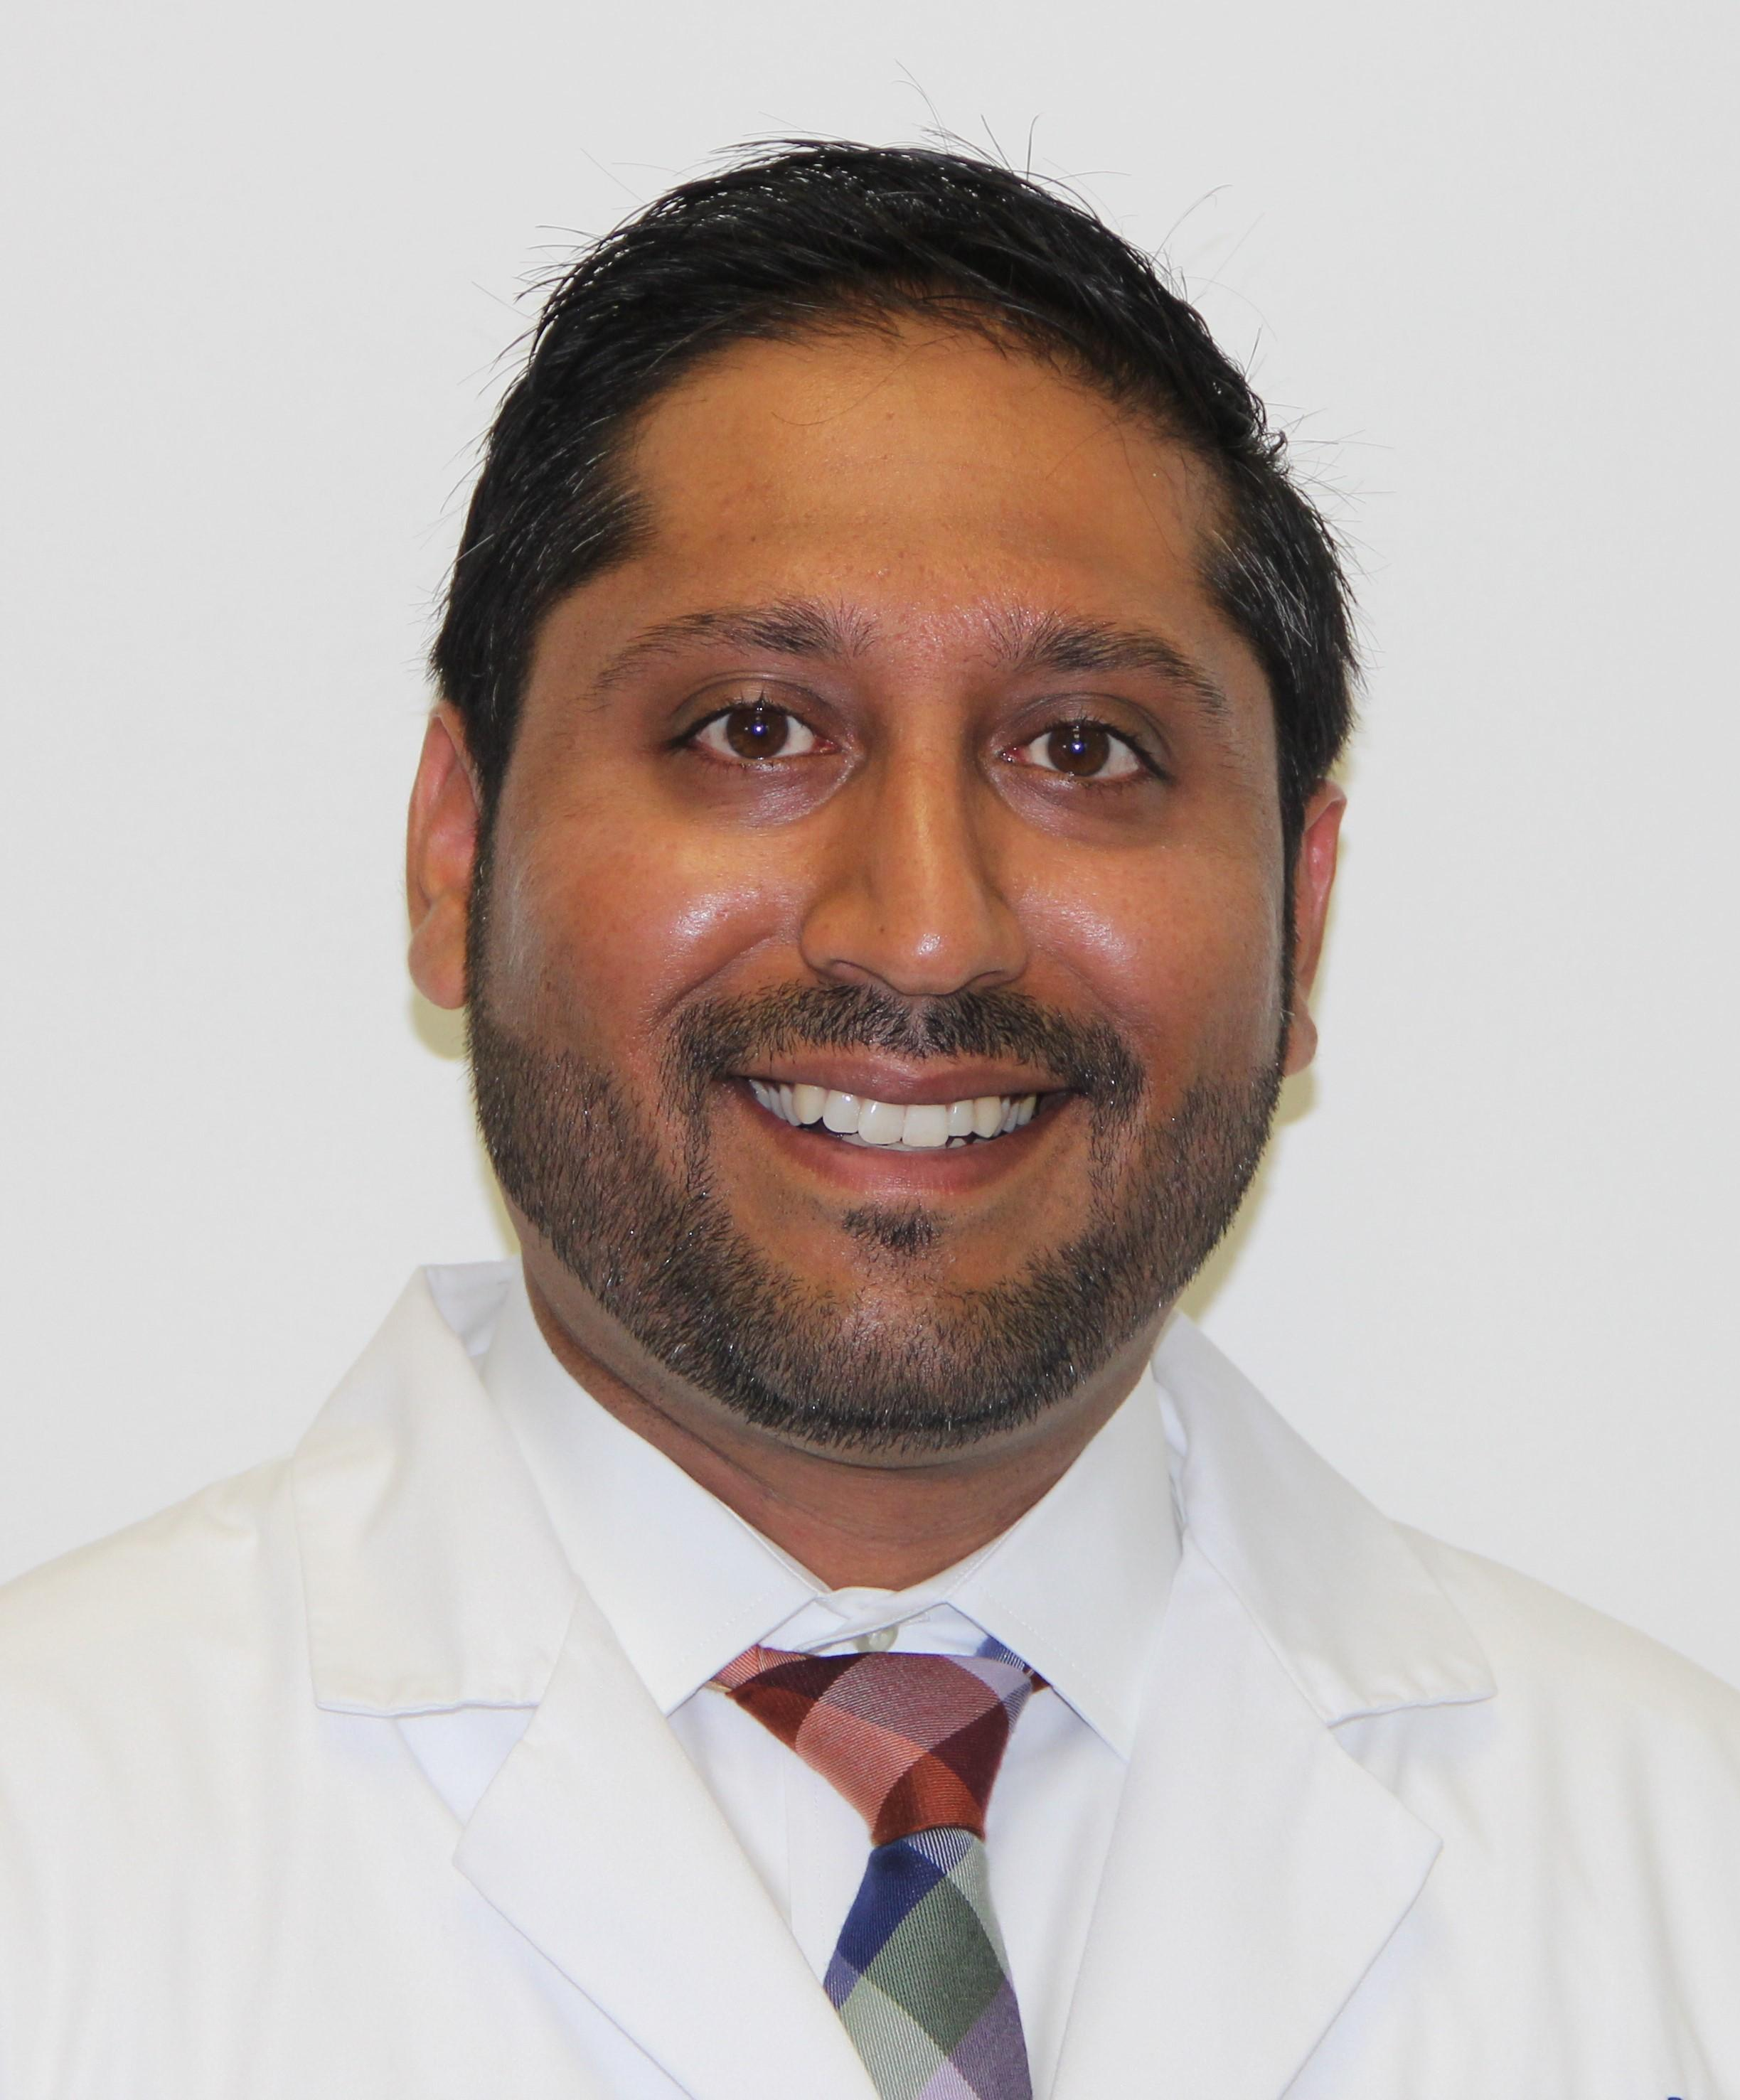 Profile Photo of Dr. Anish Chavda - None